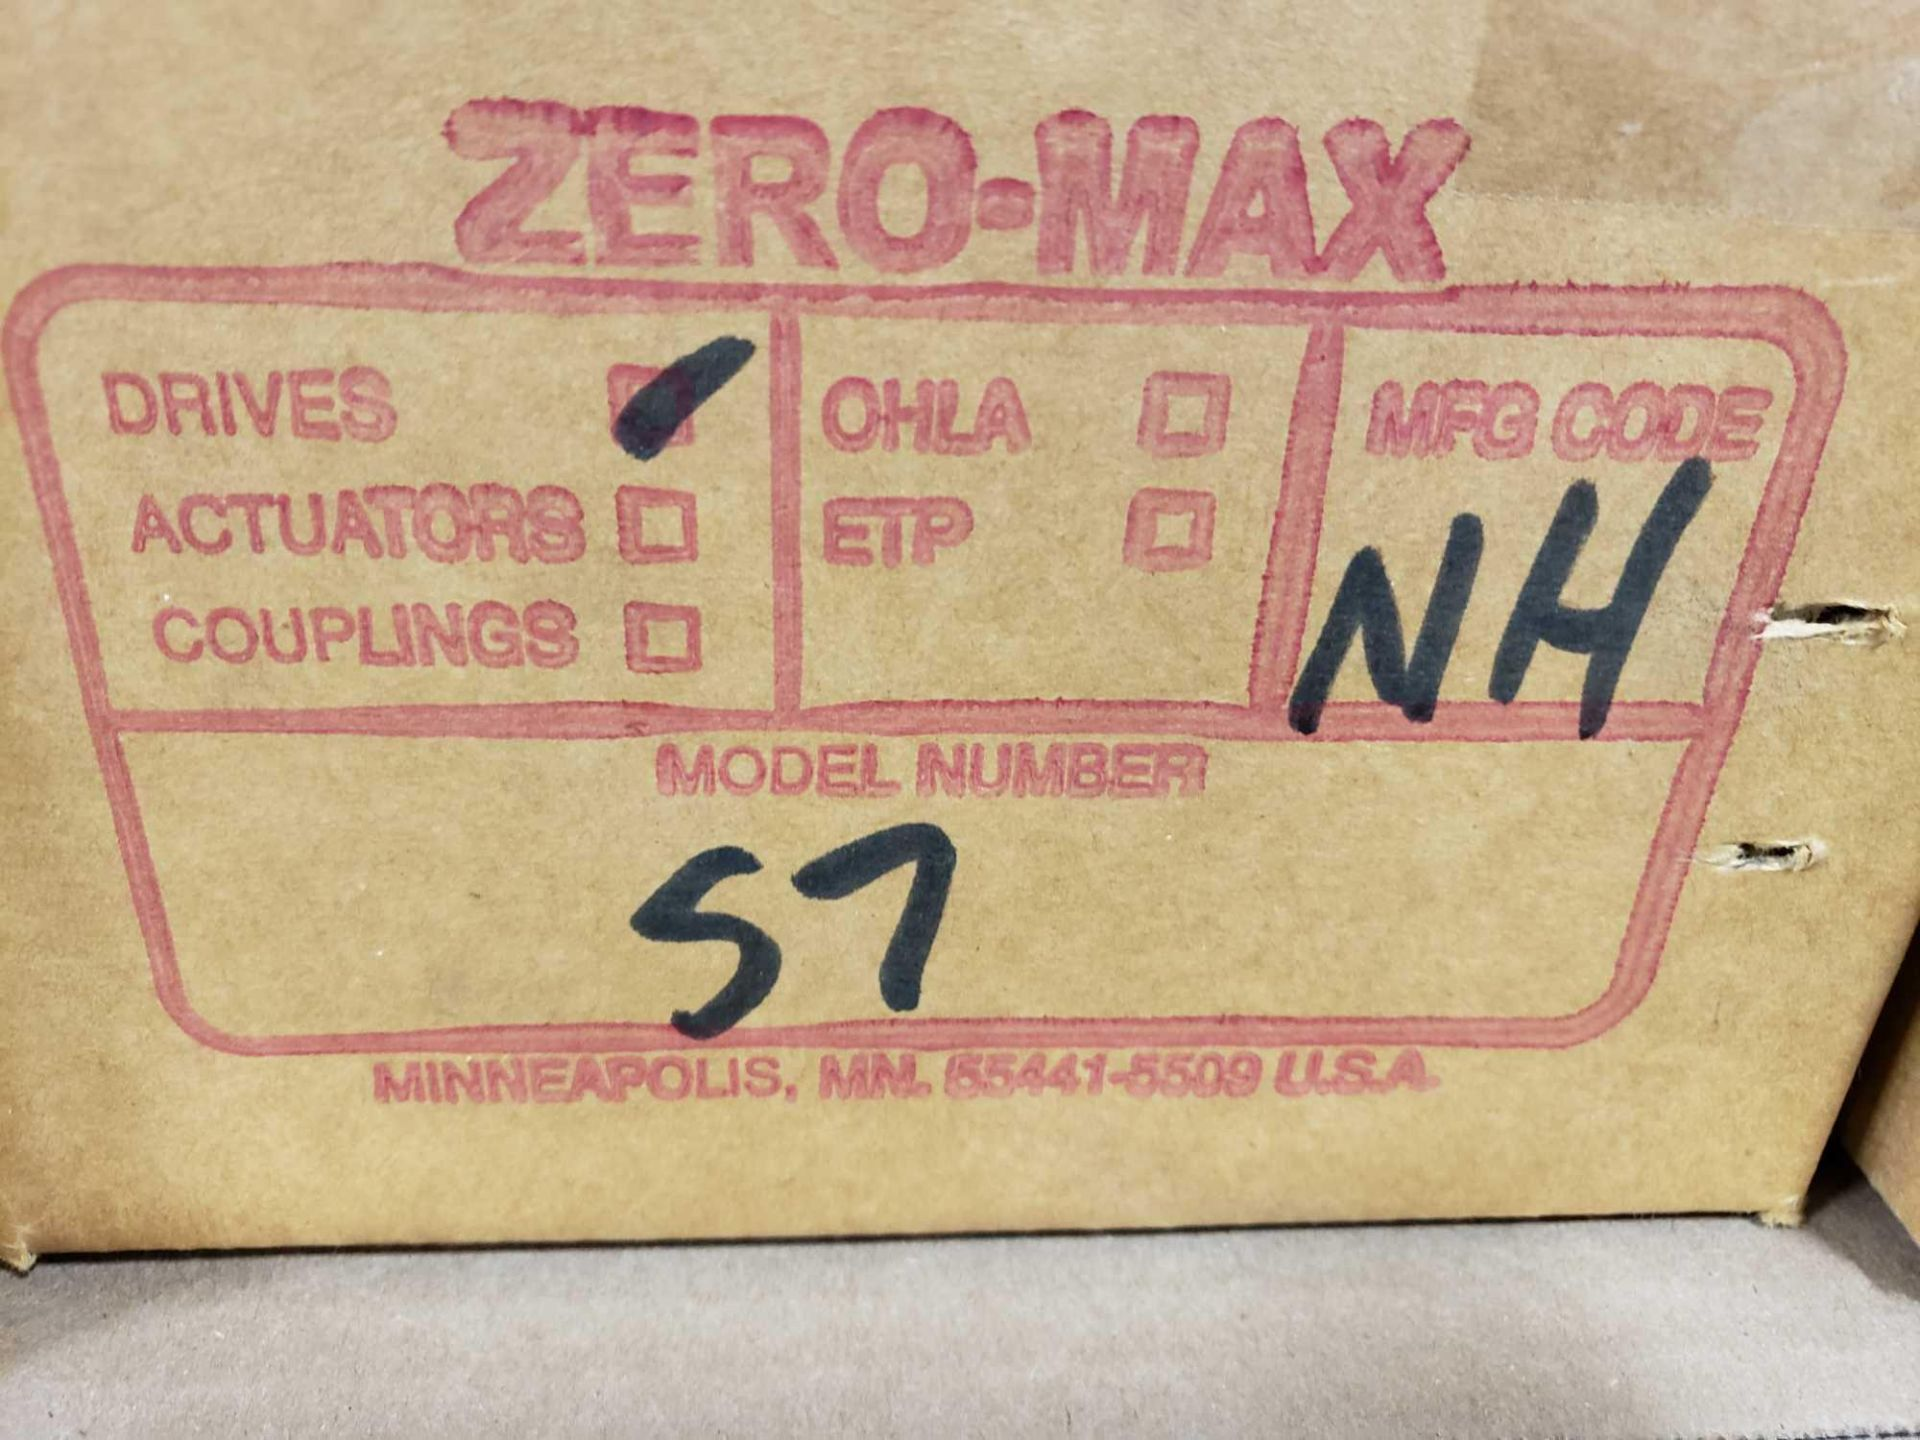 Lot 49 - Zero-max gearhead power block model S7, 0-20 output rotation, 12lb torque, 20:1 range. New in box.